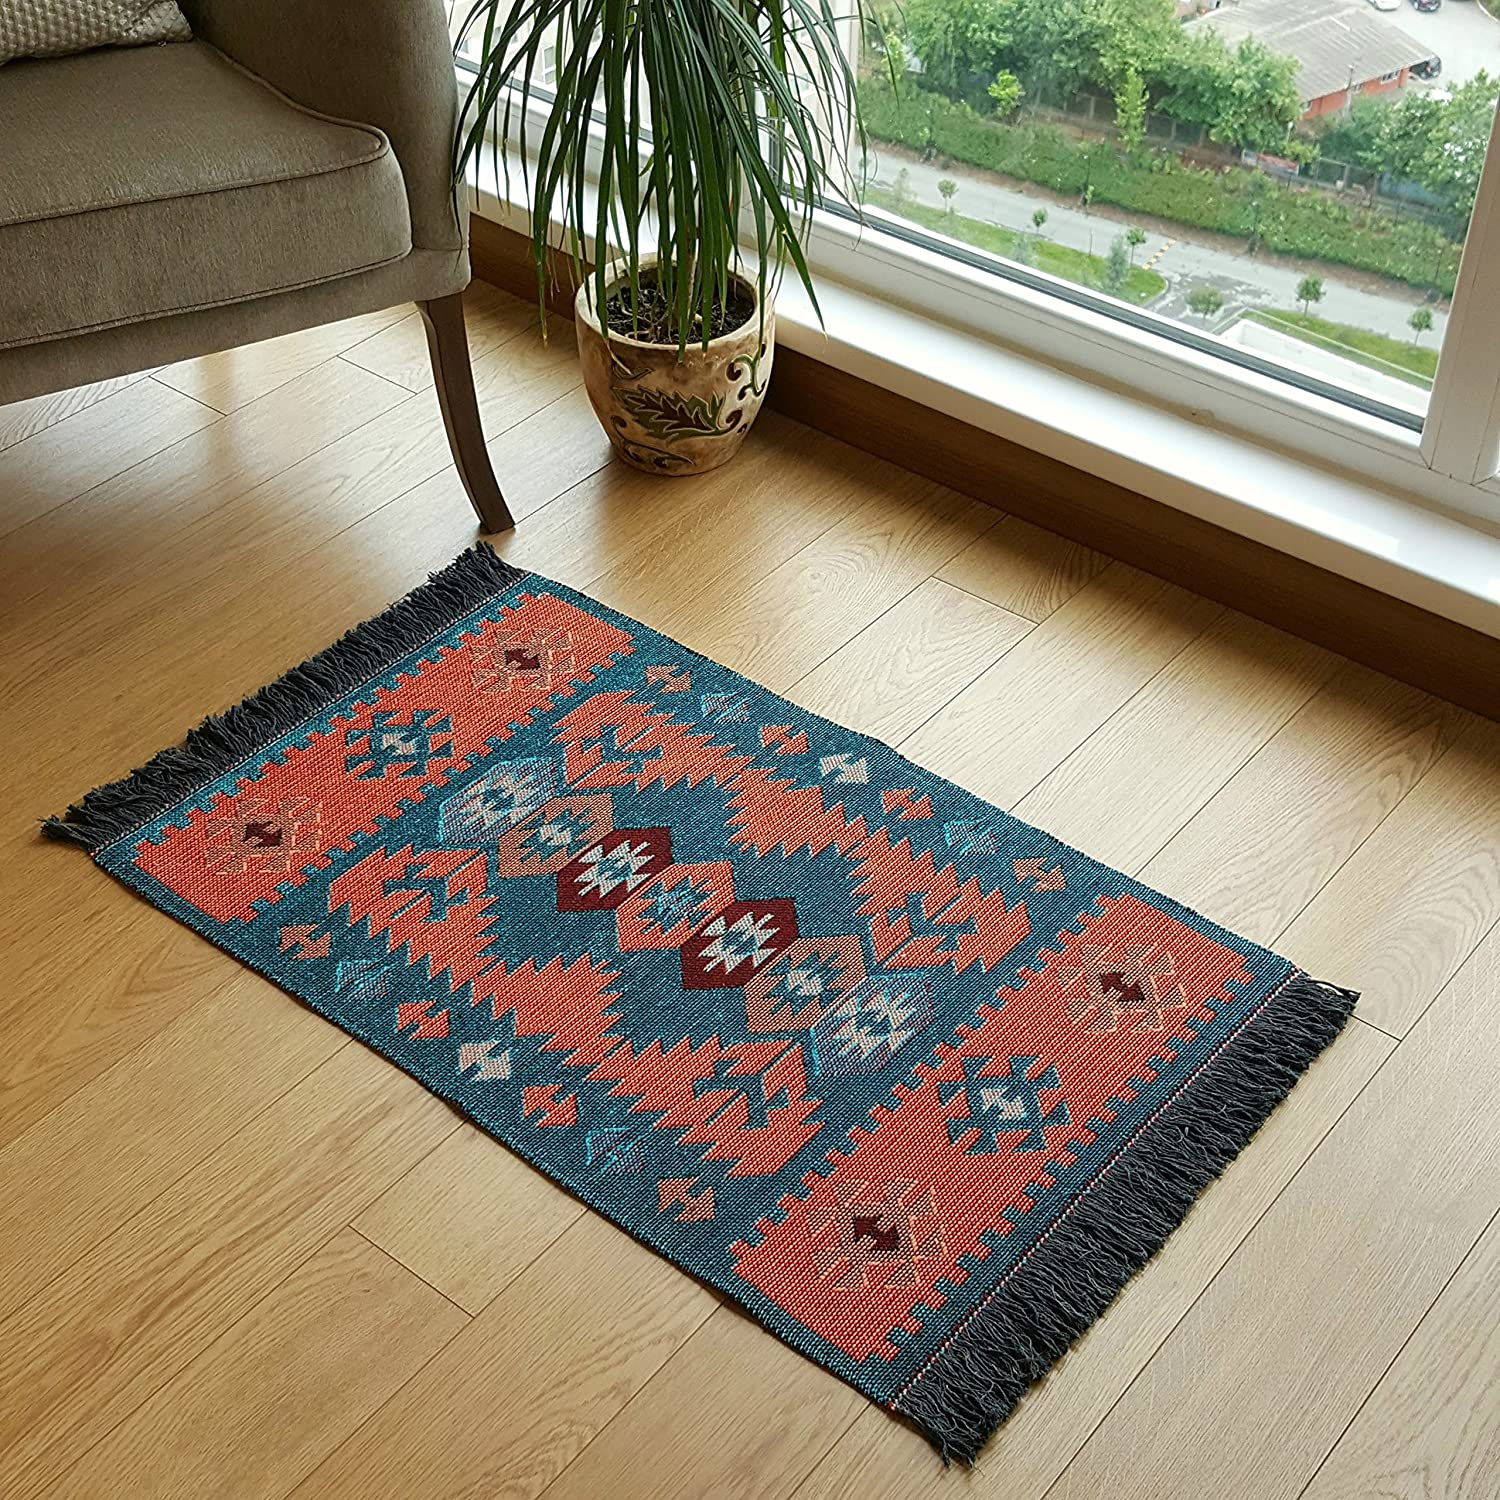 Amazon com modern bohemian style small area rug 2 x 3 ft washable natural dye colors reversible turquoise orange garden outdoor